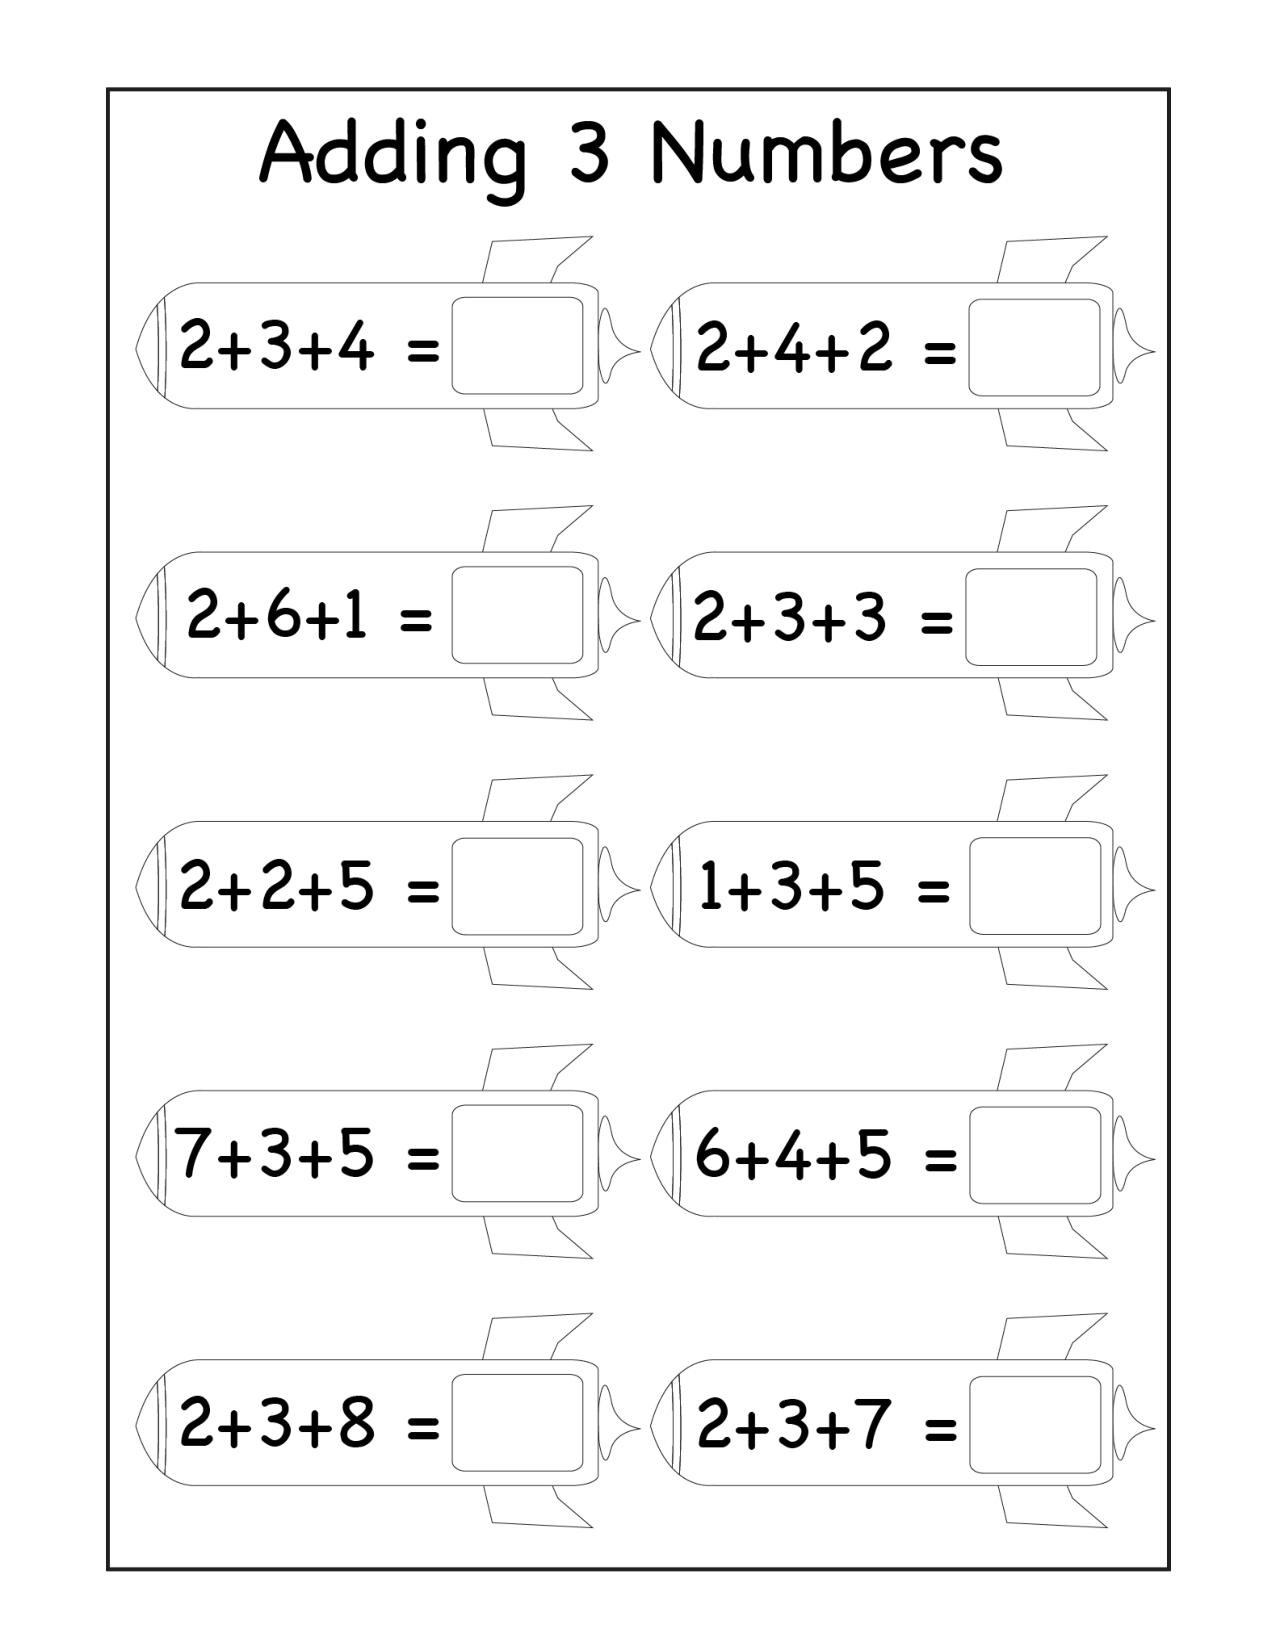 Missing Addends Worksheets First Grade 1st Grade Archives Page 4 Of 13